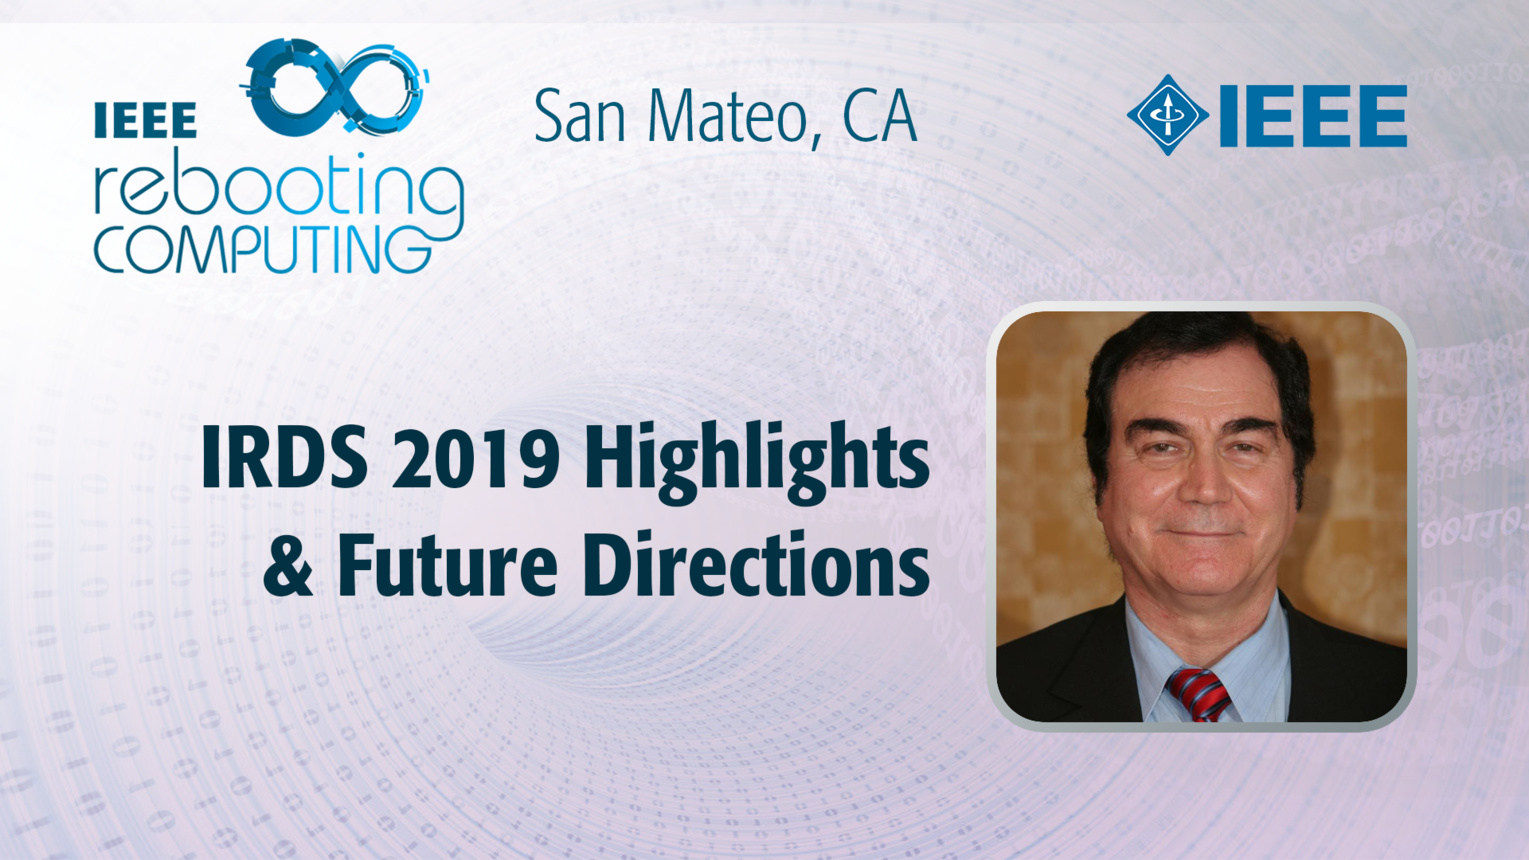 IRDS Highlights & Future Directions - Paolo Gargini - ICRC San Mateo, 2019